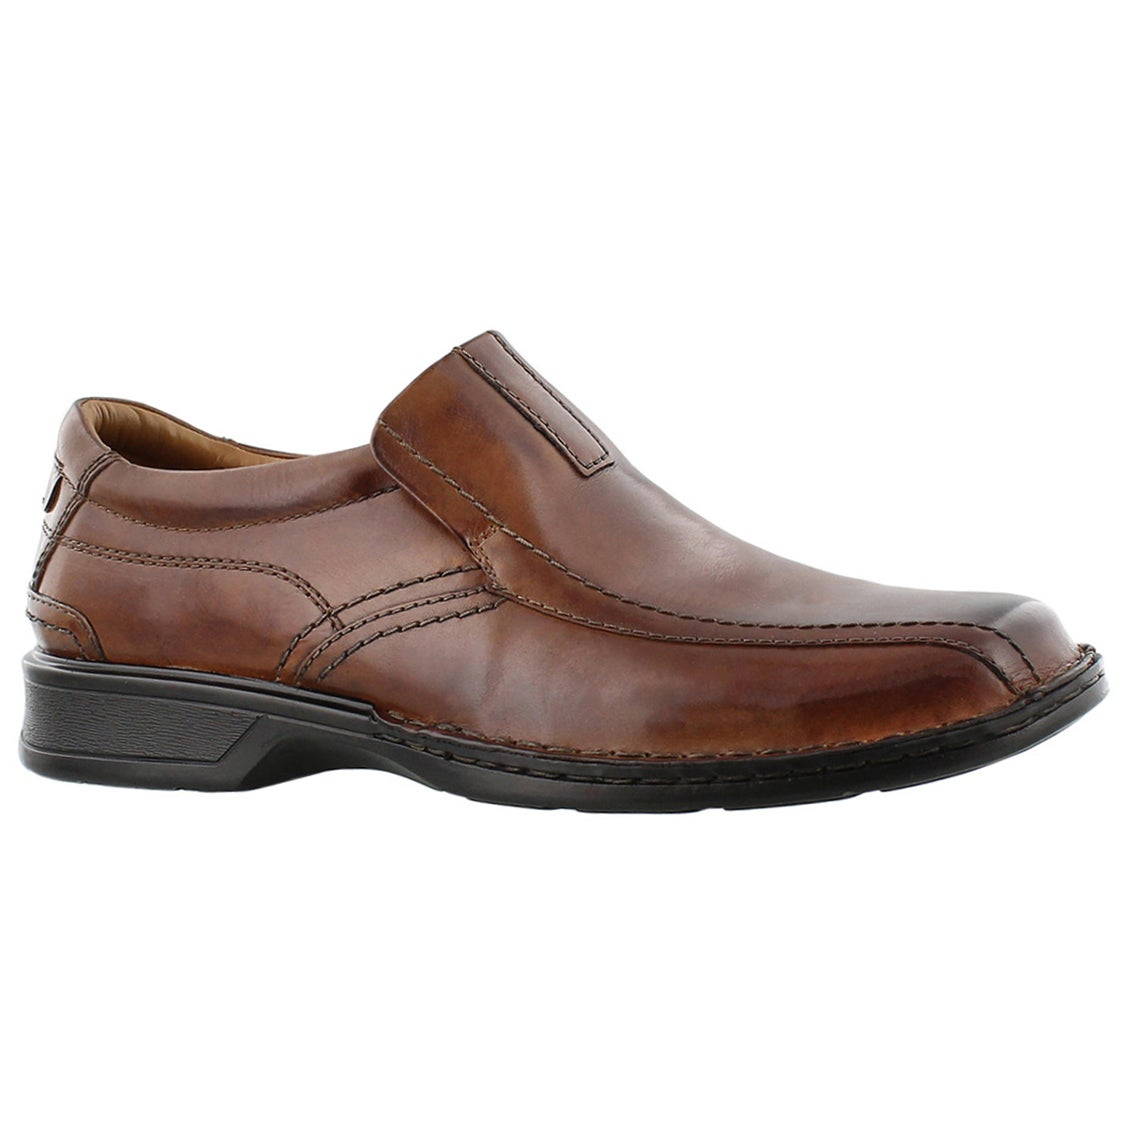 Mns Escalade Step brn slip on dress shoe